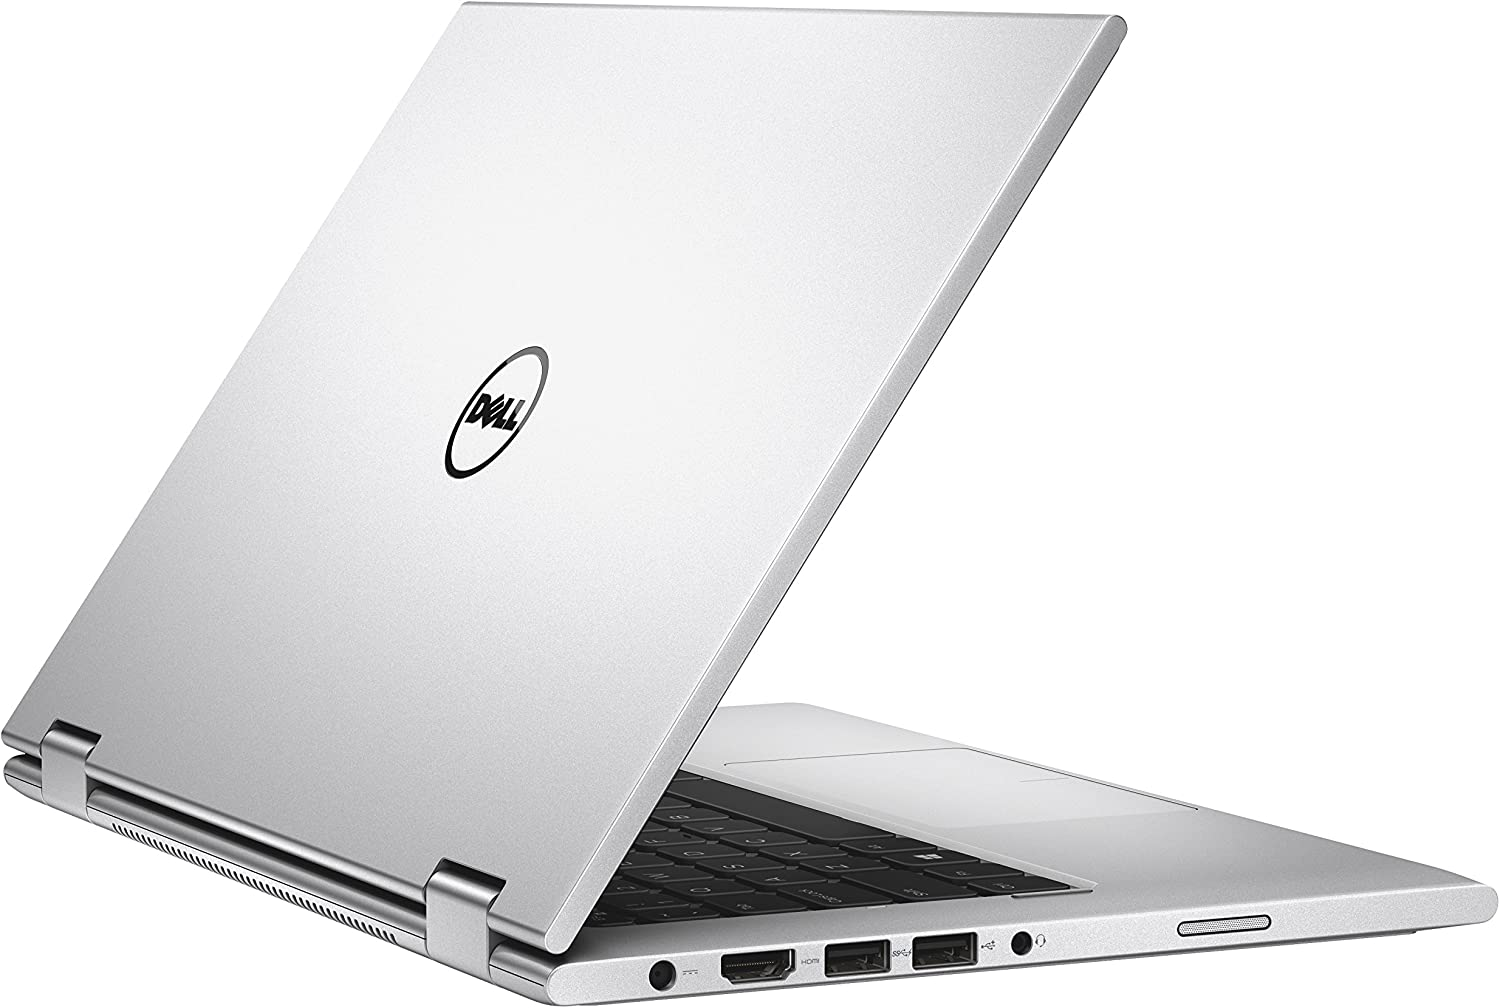 DELL Inspiron 11 3000 2-in-1 ノートパソコン